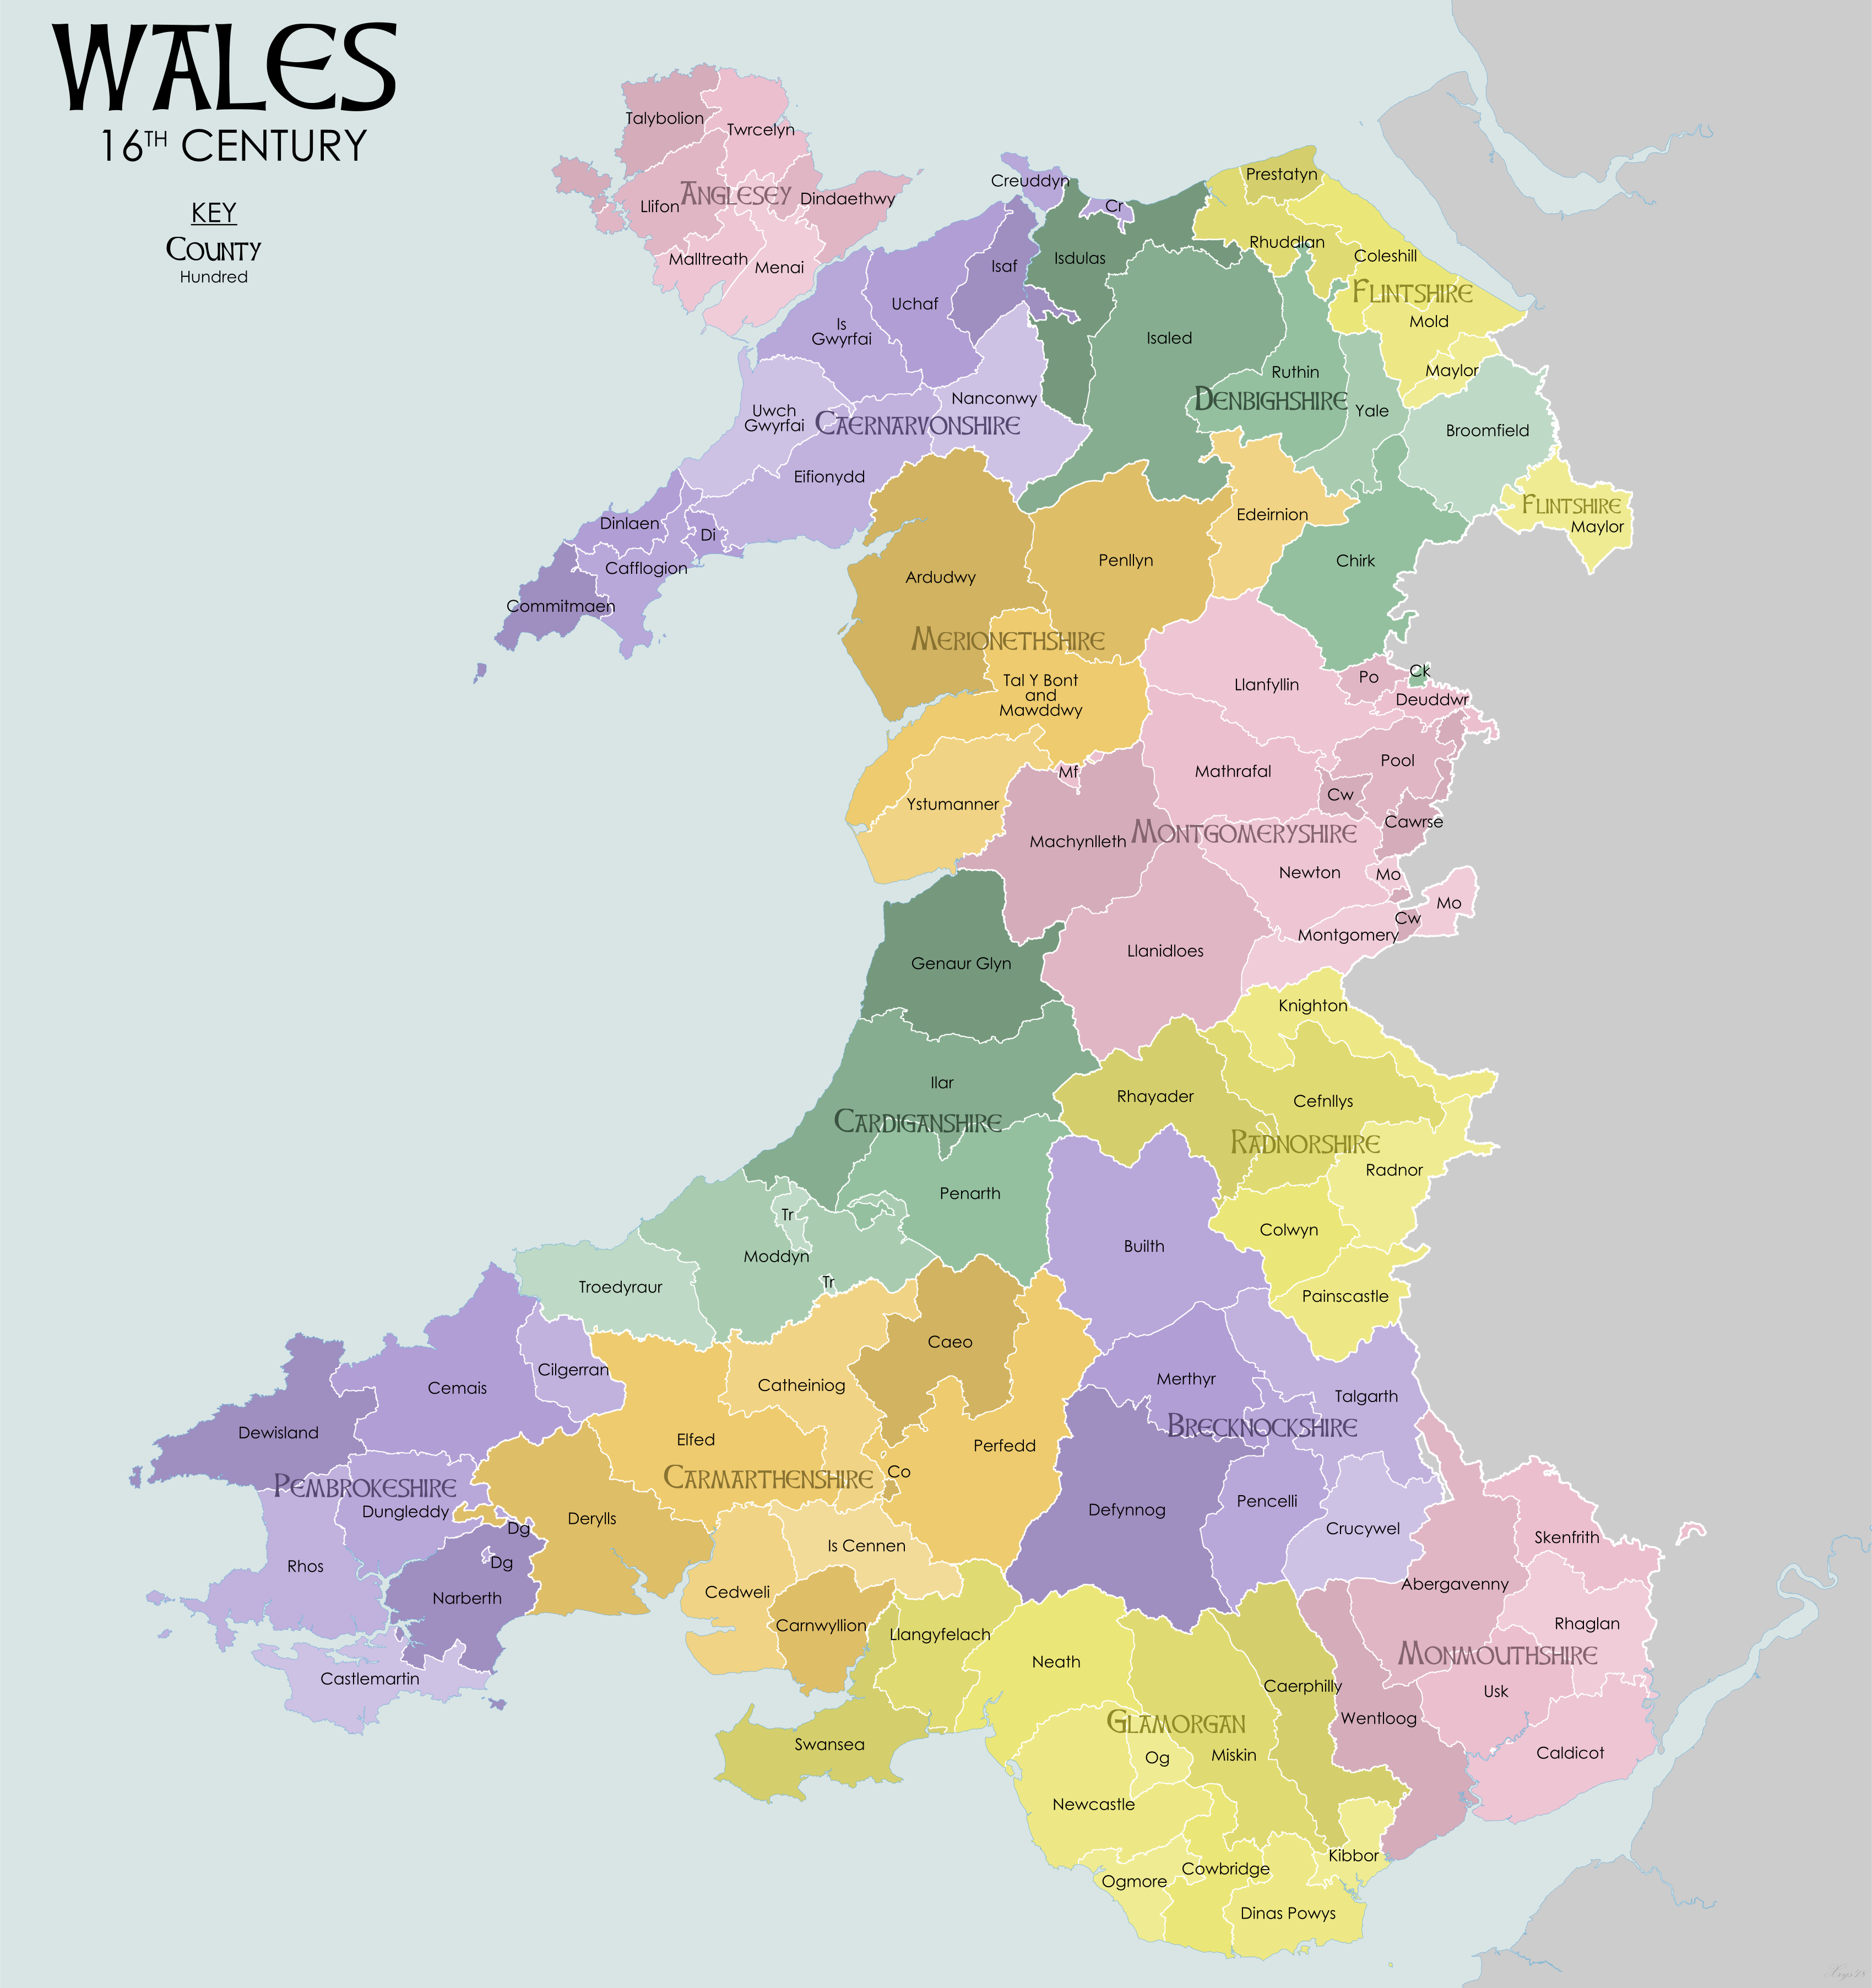 File:Wales 16C Map.png - Wikimedia Commons